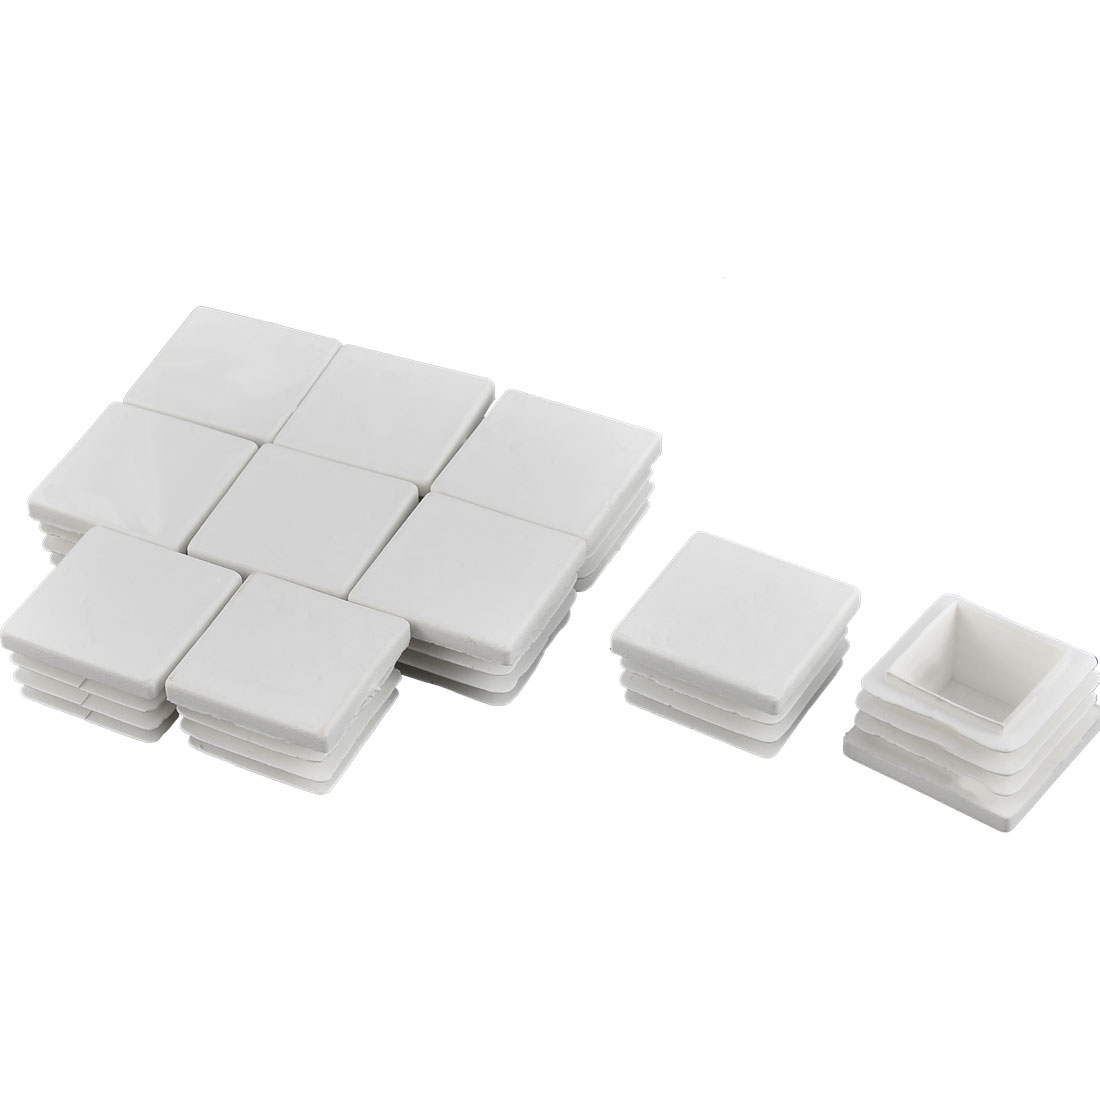 Furniture Table Chair Legs Plastic Square Tube Insert Cap Cover Protector White 30 x 30mm 10pcs